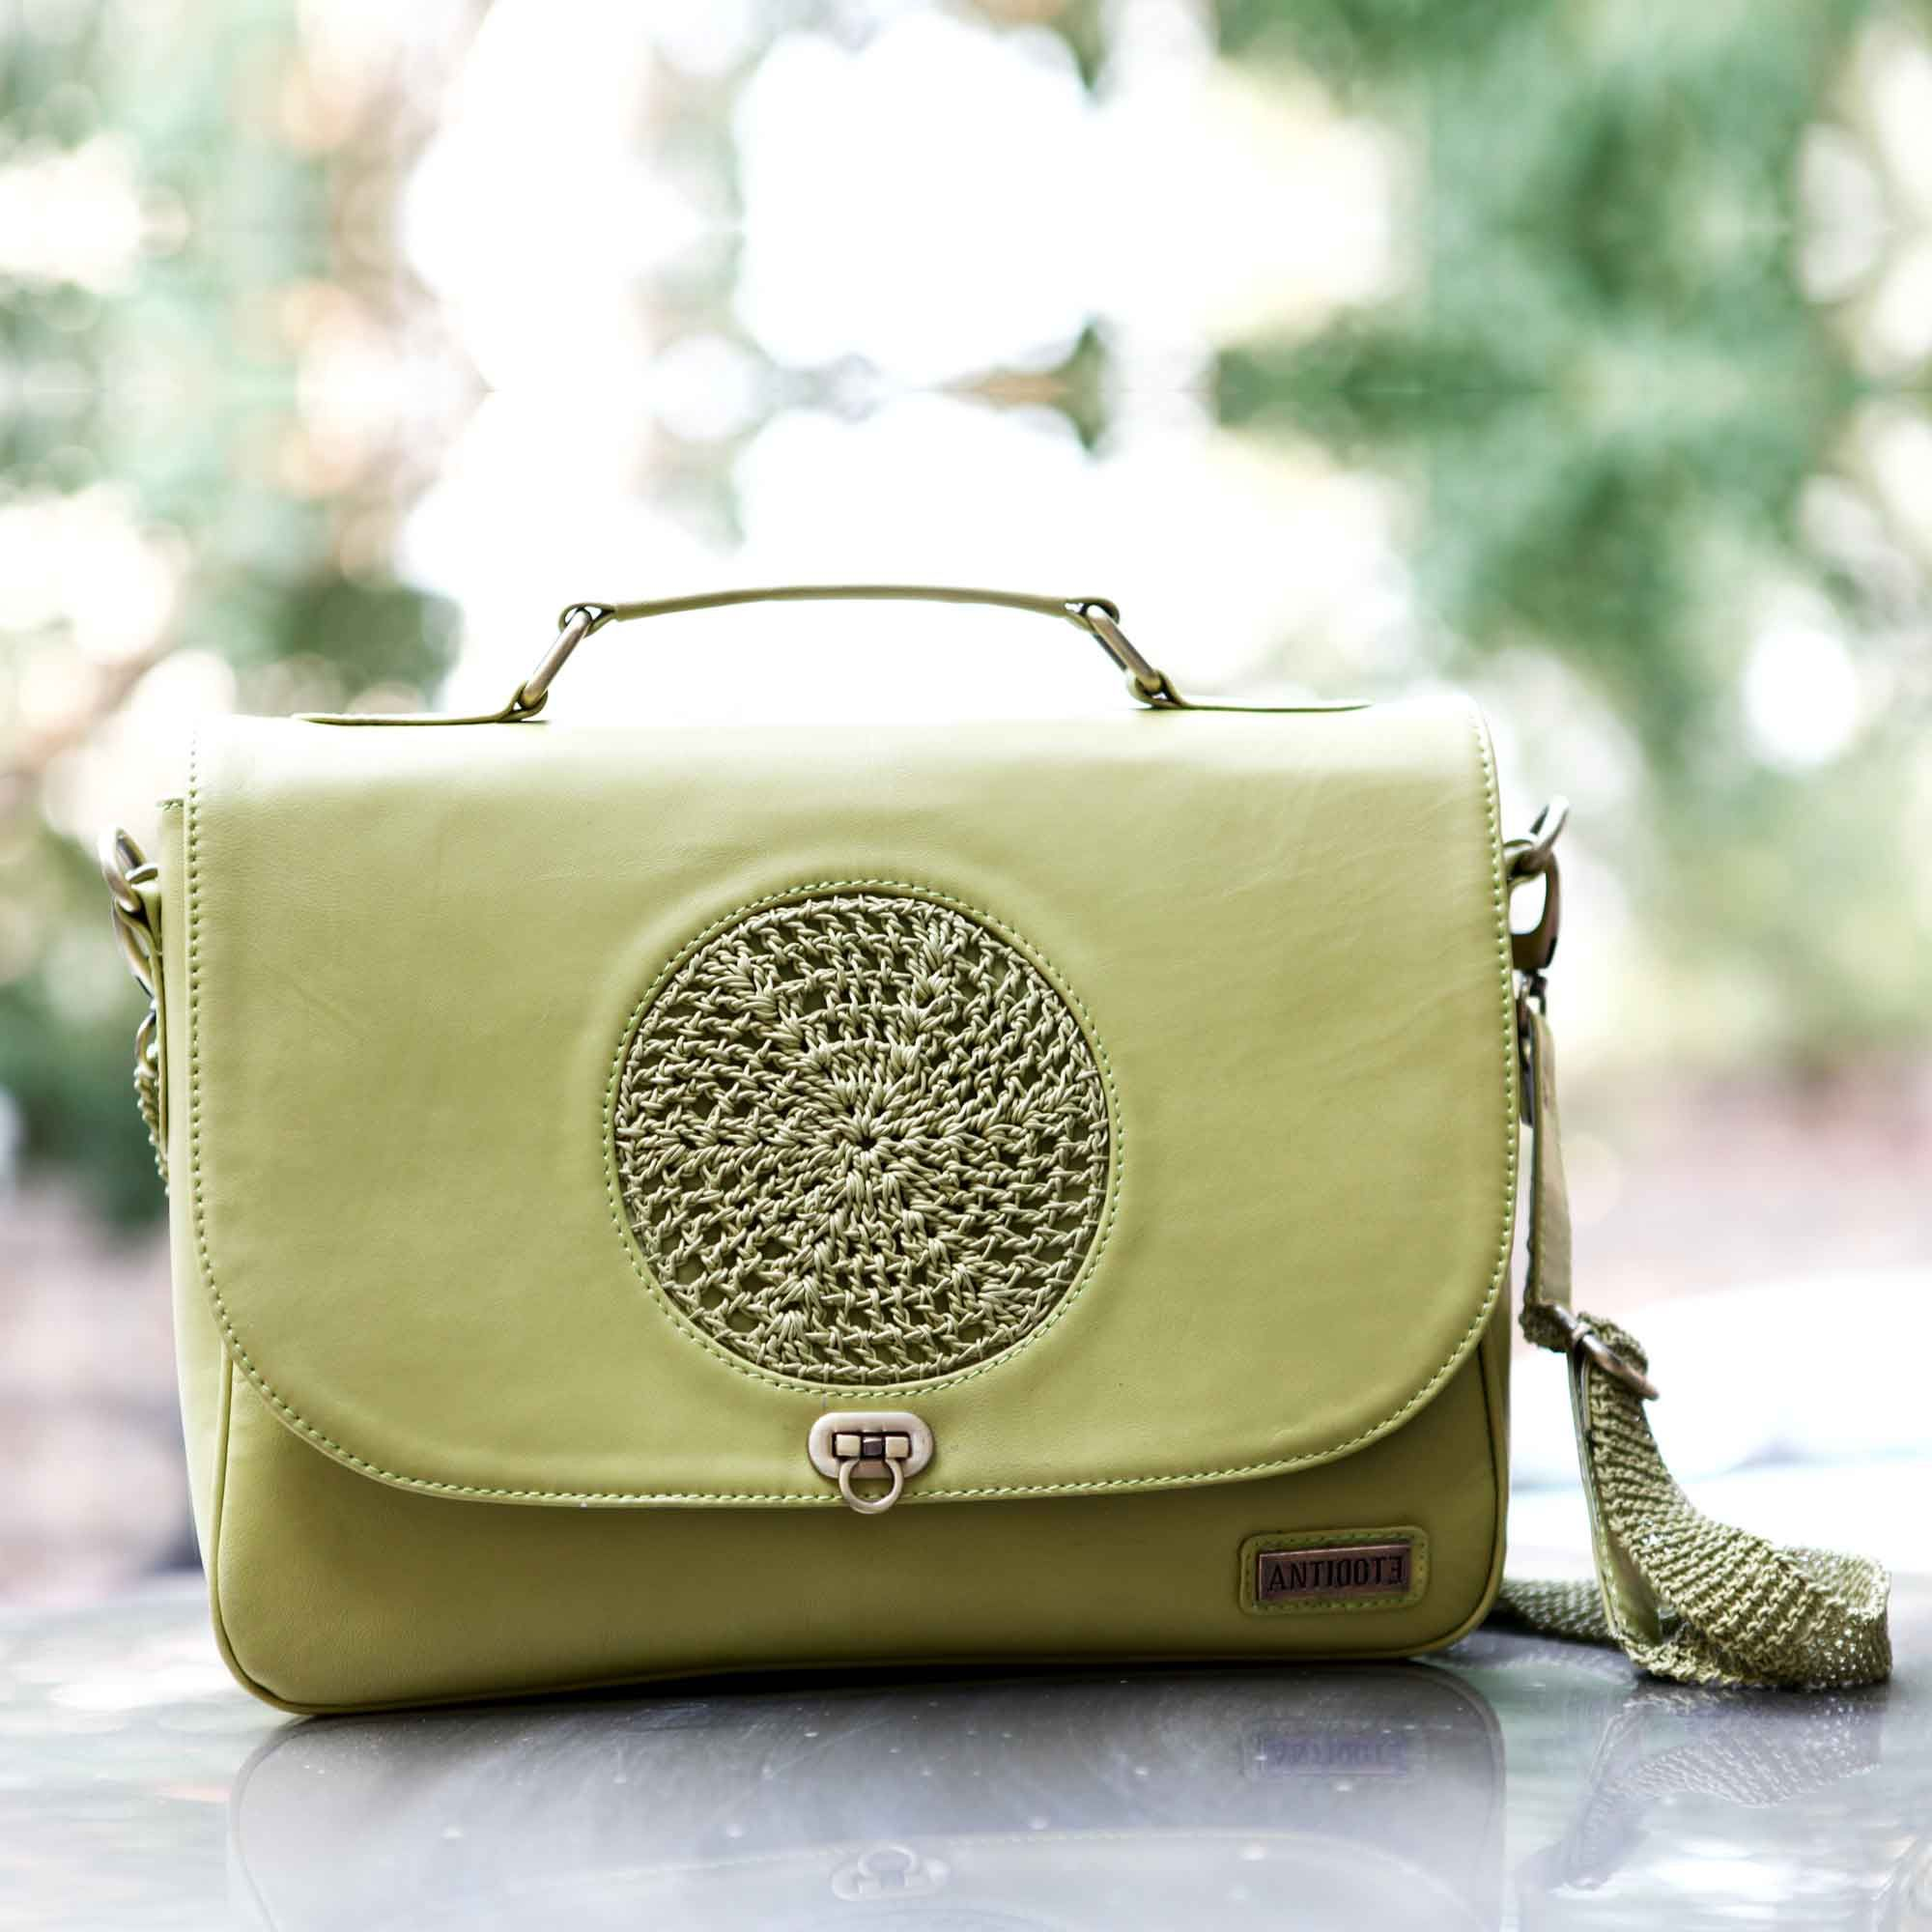 Antidote Mireille Green Leather Handbag #Green #SlingBags #Buckle ...